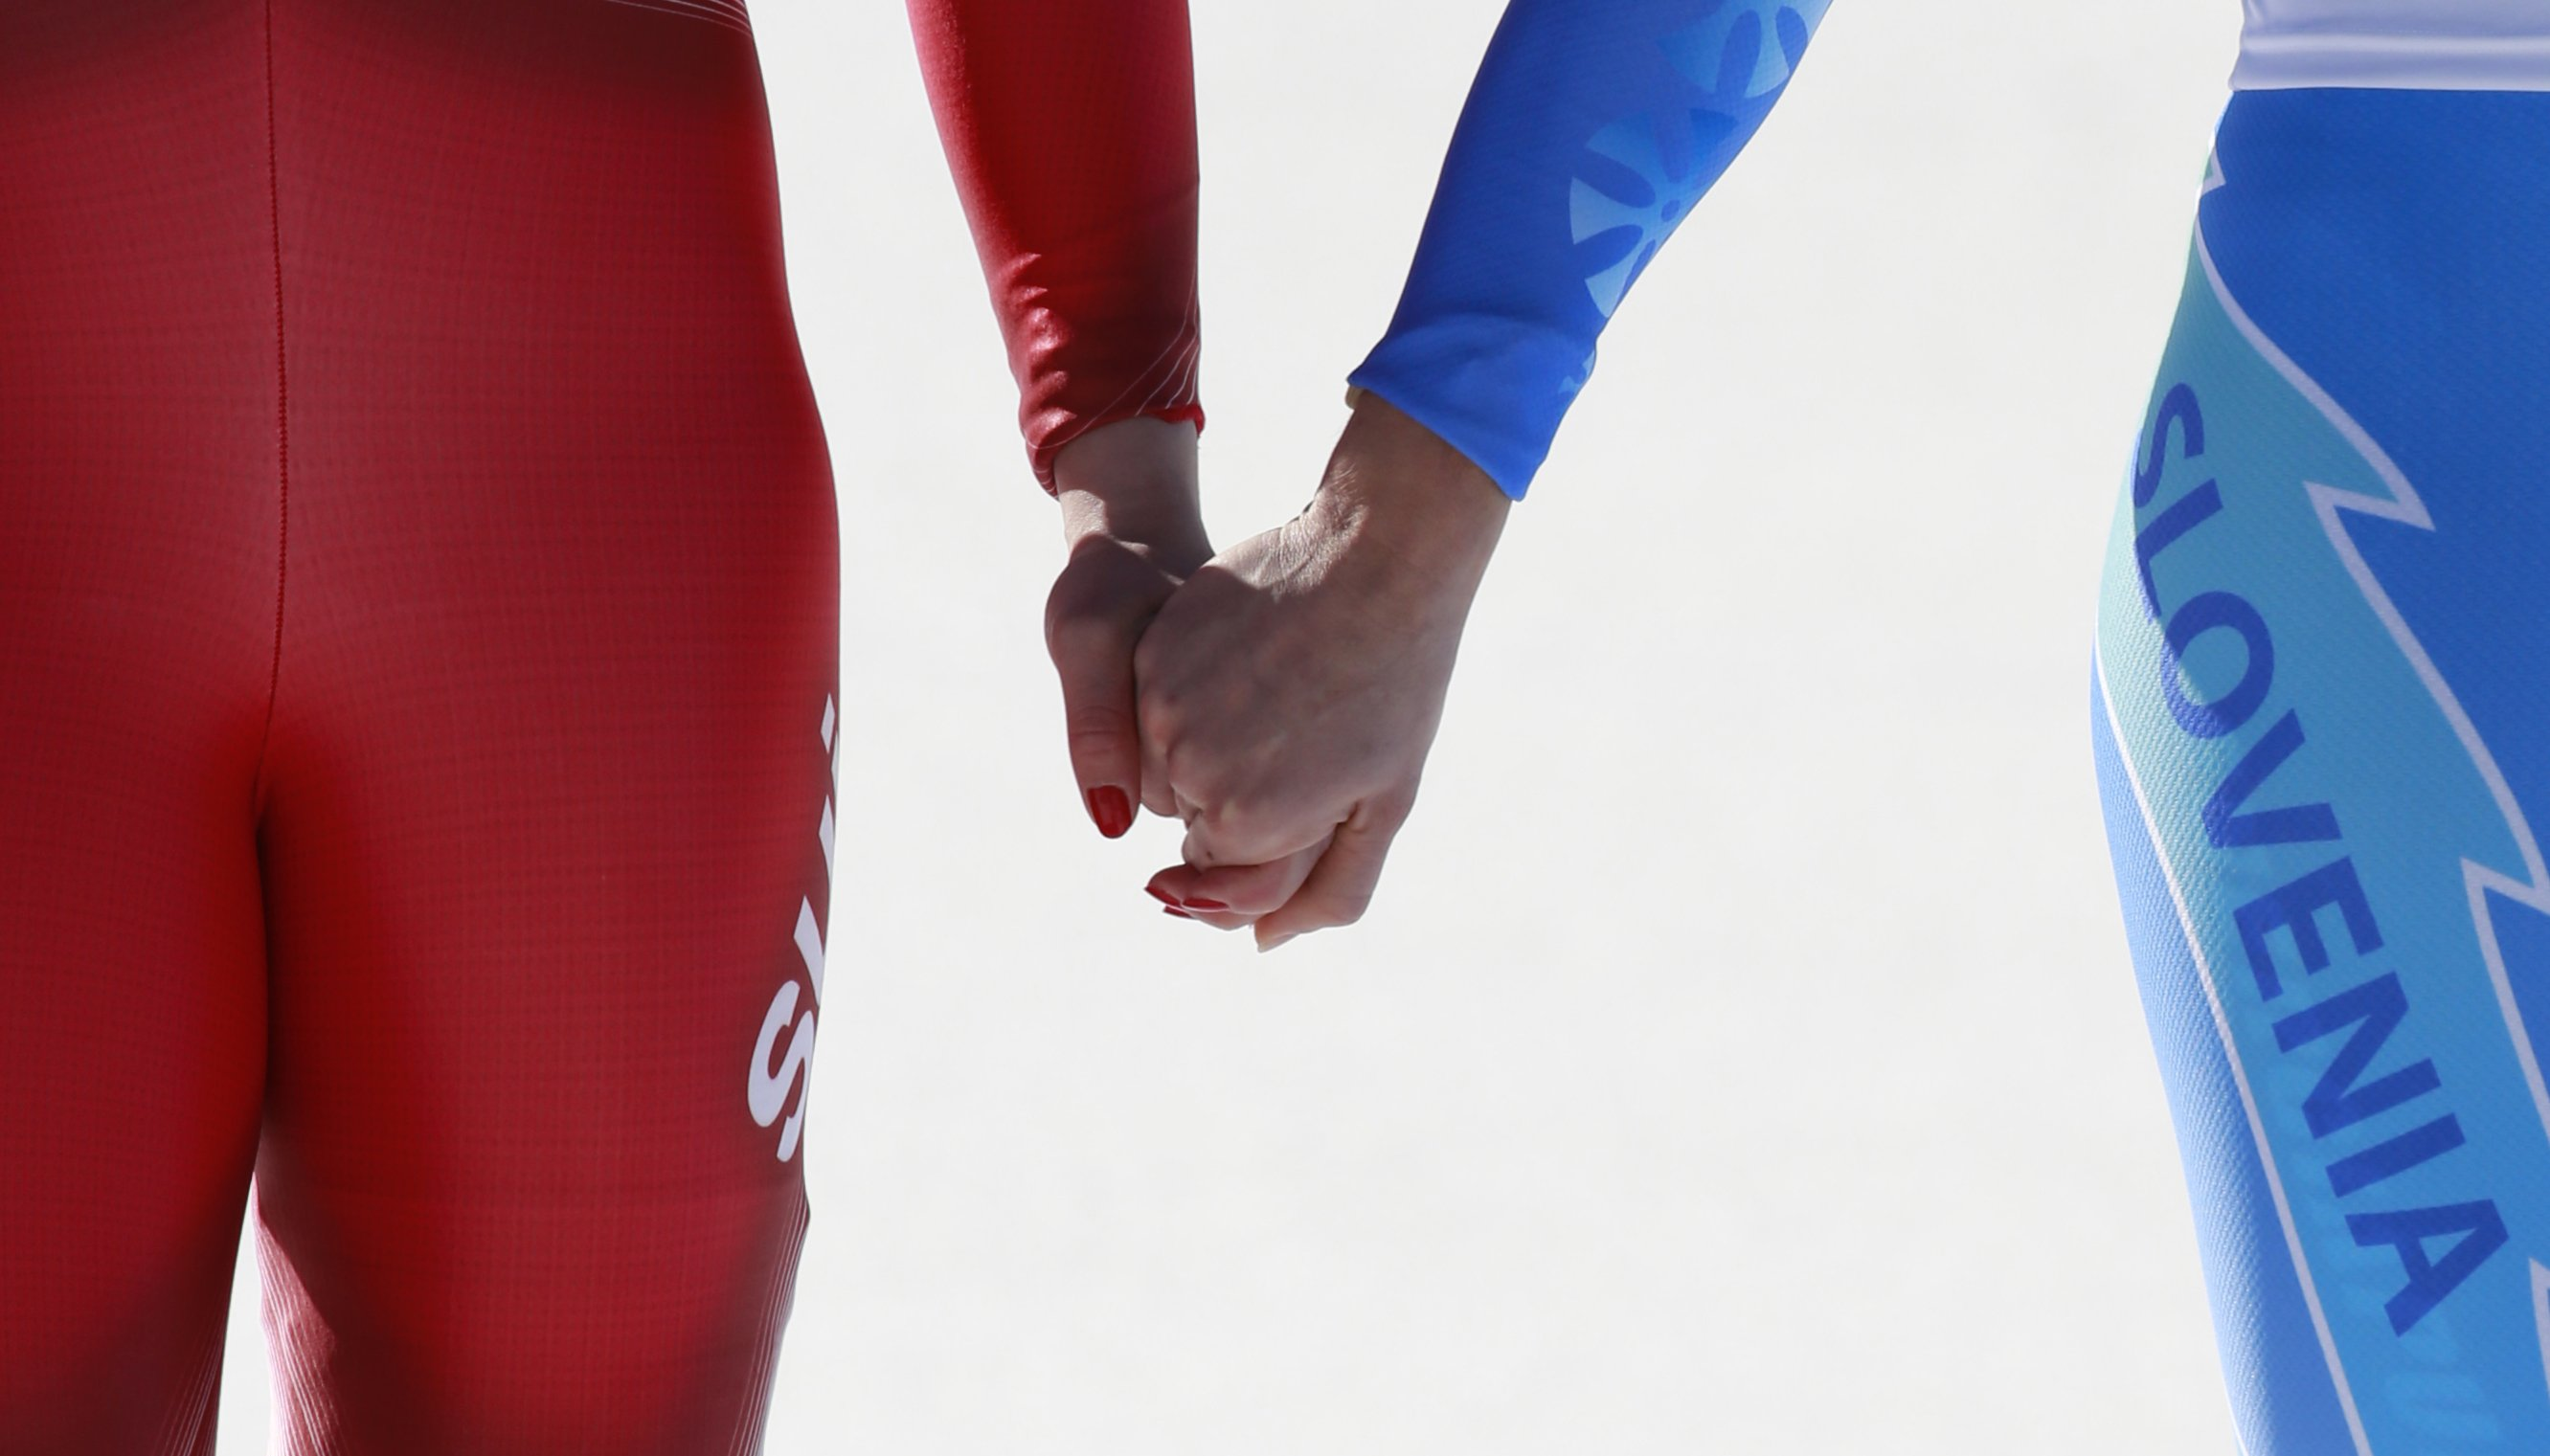 Women's downhill gold medal winners Switzerland's Dominique Gisin, left, and Slovenia's Tina Maze, right, hold hands on the podium during a flower ceremony.